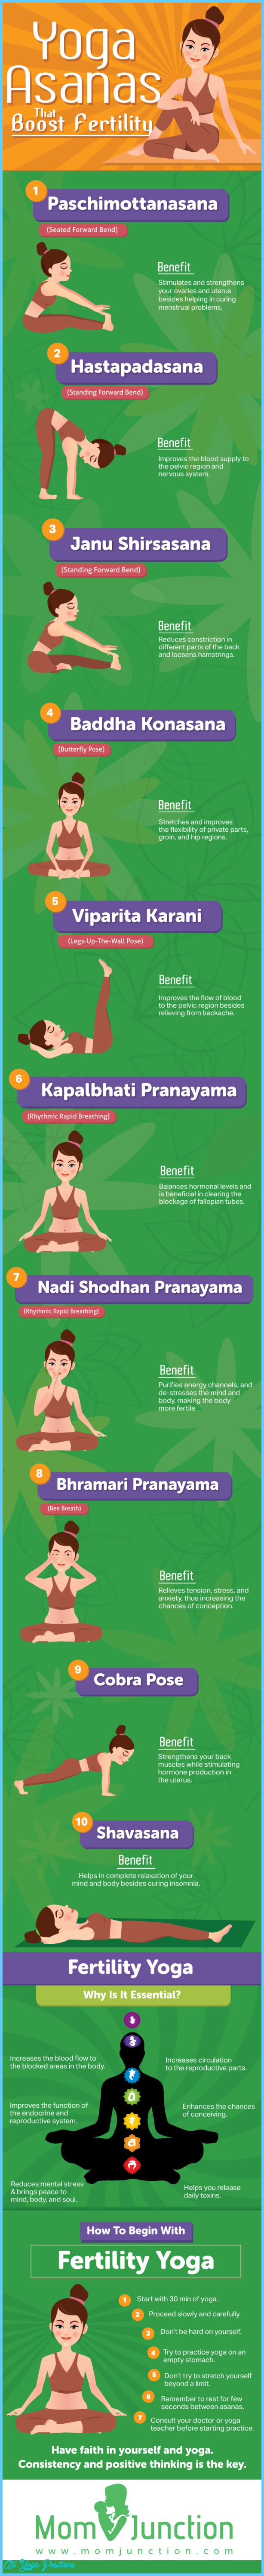 YOGA POSES FOR MALE REPRODUCTIVE SYSTEM_2.jpg